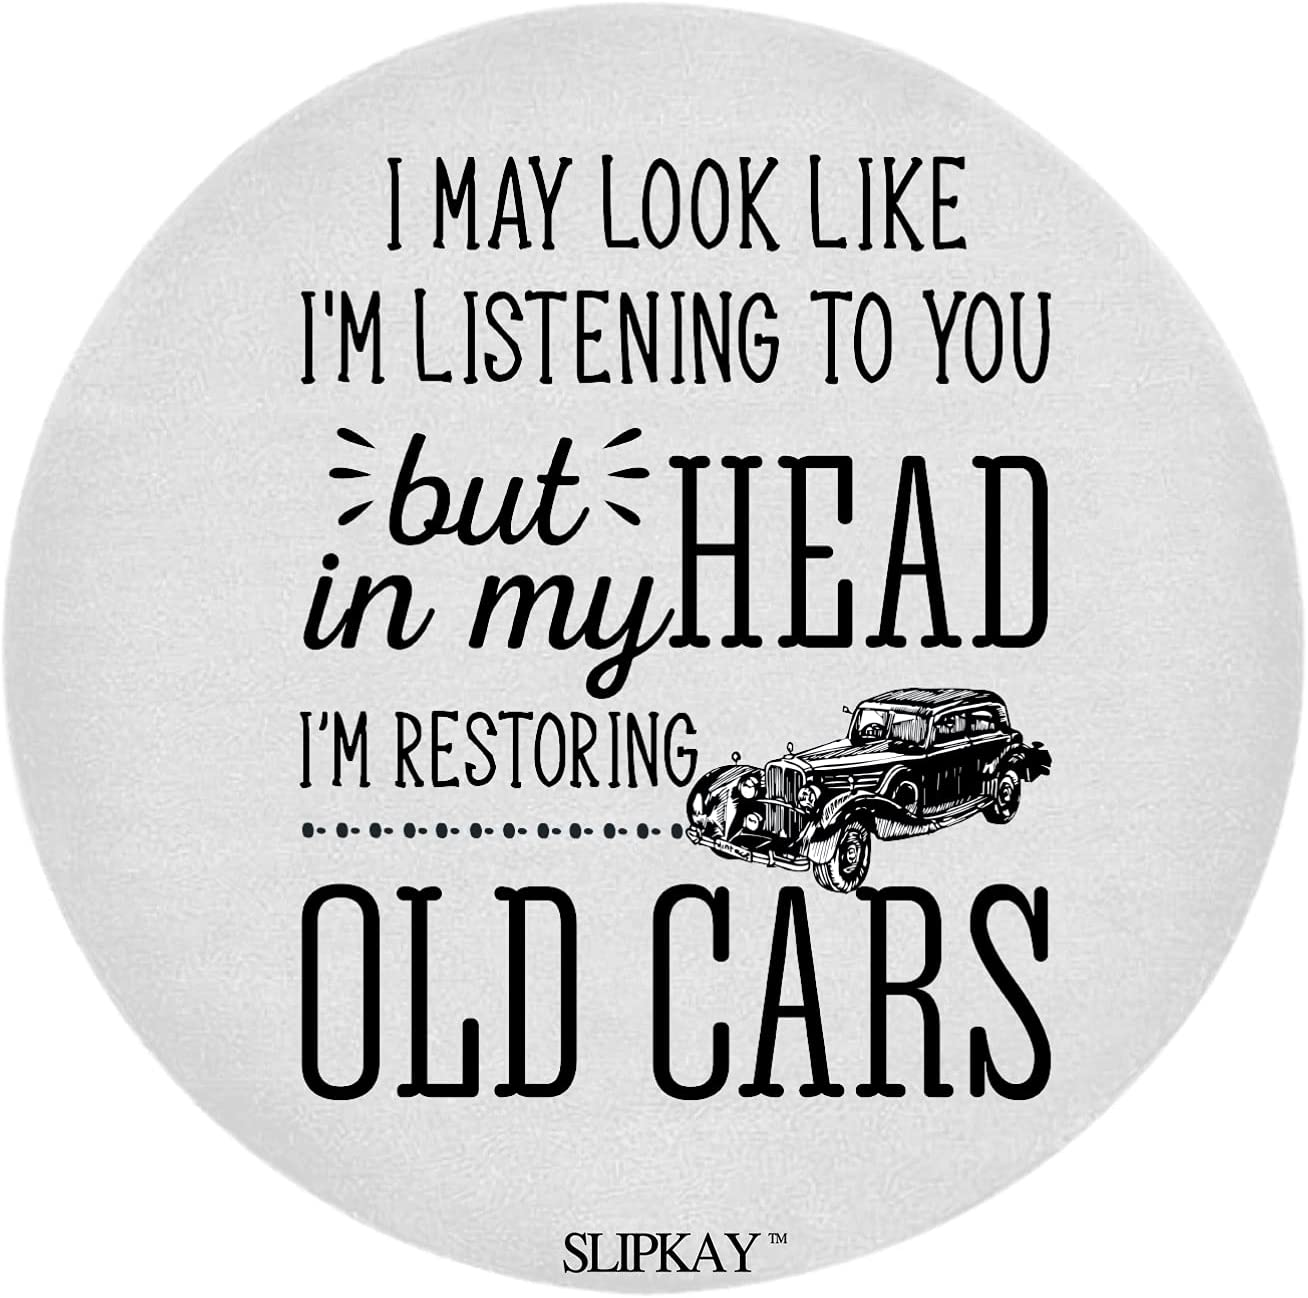 Restoring Old Cars I May Look Like to Im New arrival Indefinitely My Listening But in You